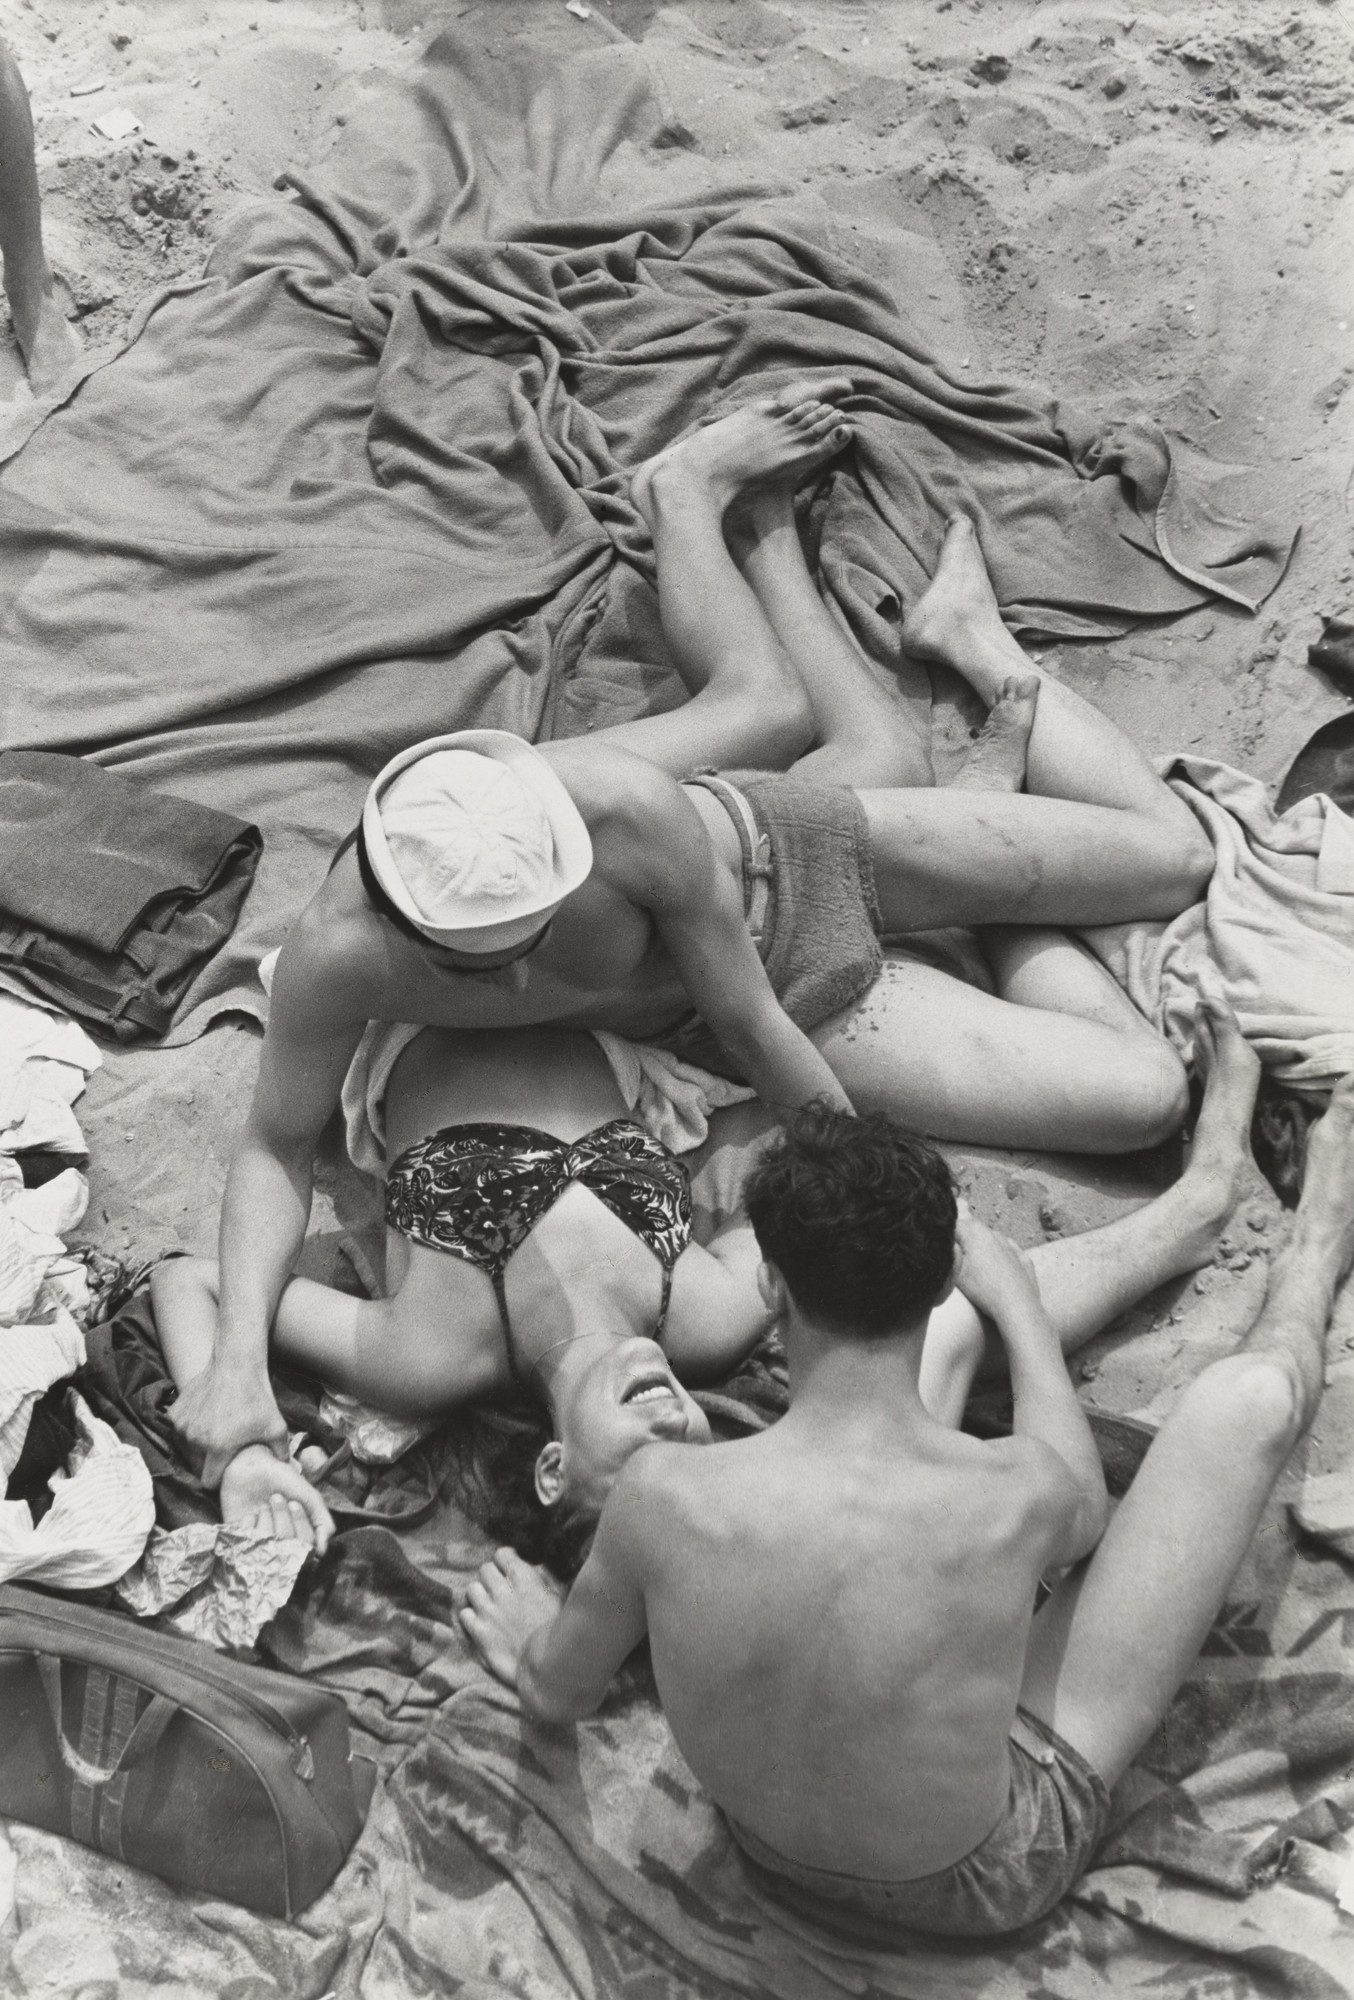 Henri Cartier-Bresson. Coney Island, New York. 1946